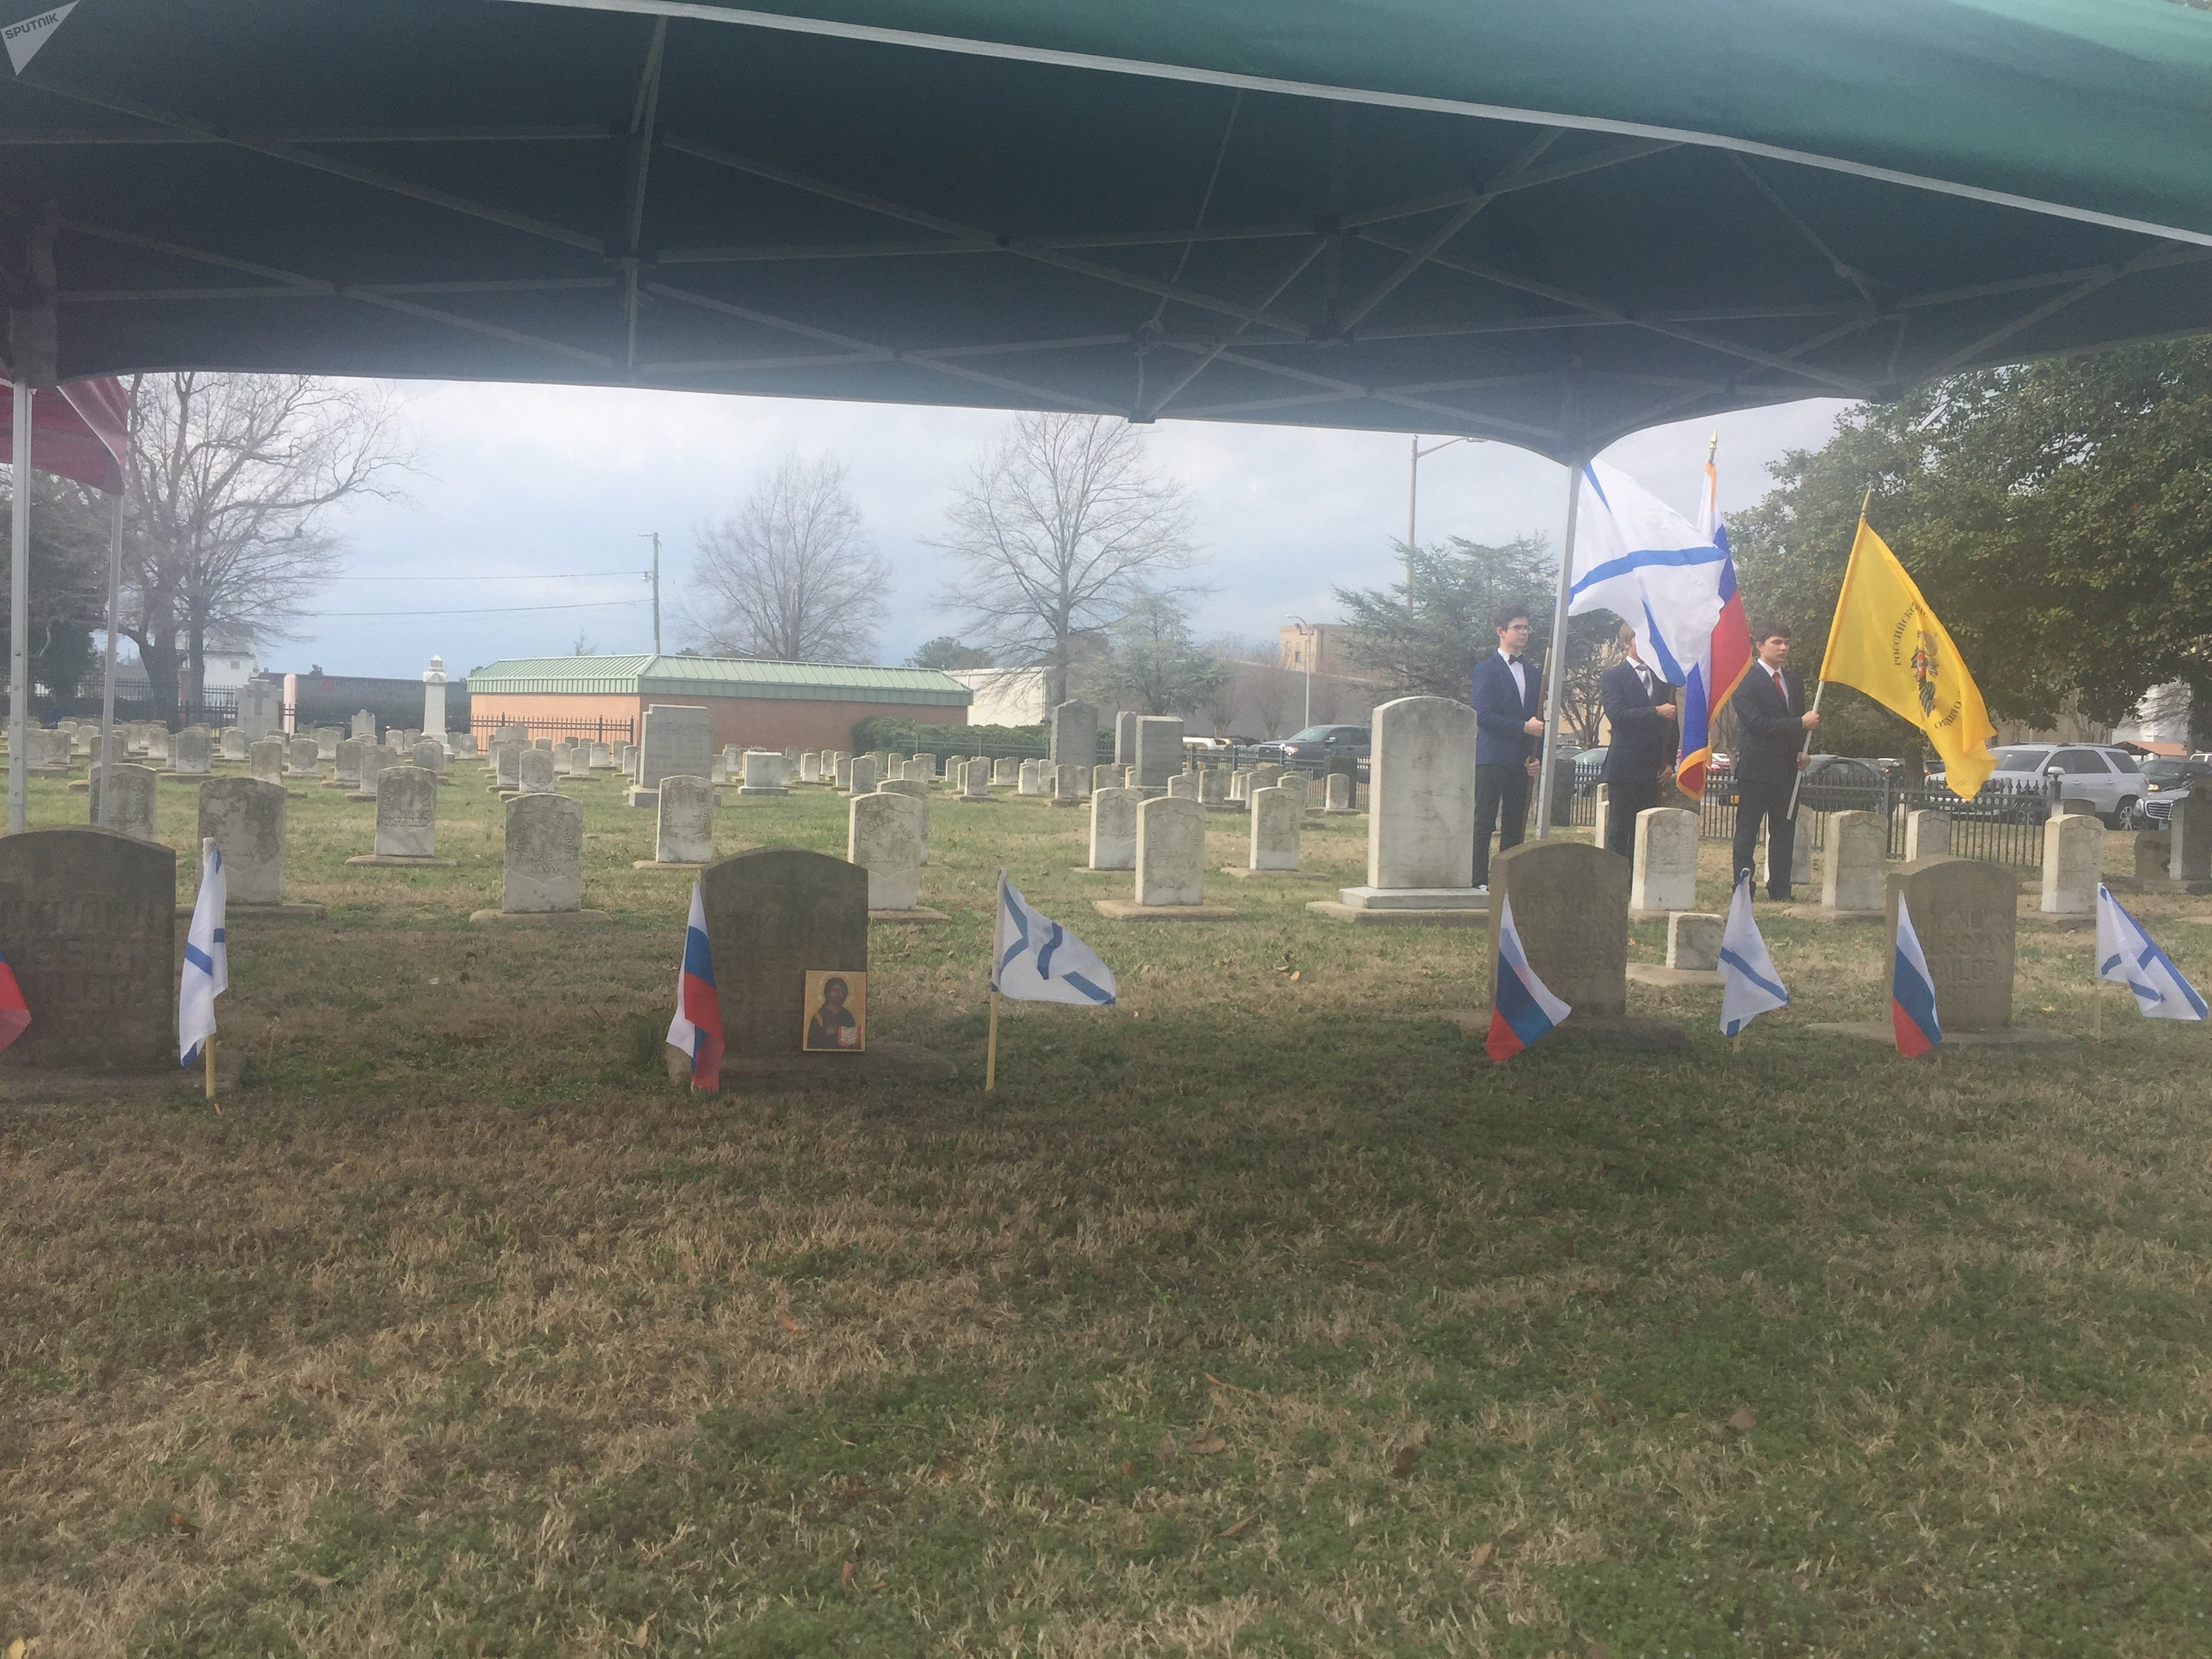 Memorial event in honor of six Russian Navy sailors who buried at the US Naval Hospital Cemetery in Portsmouth, Virginia